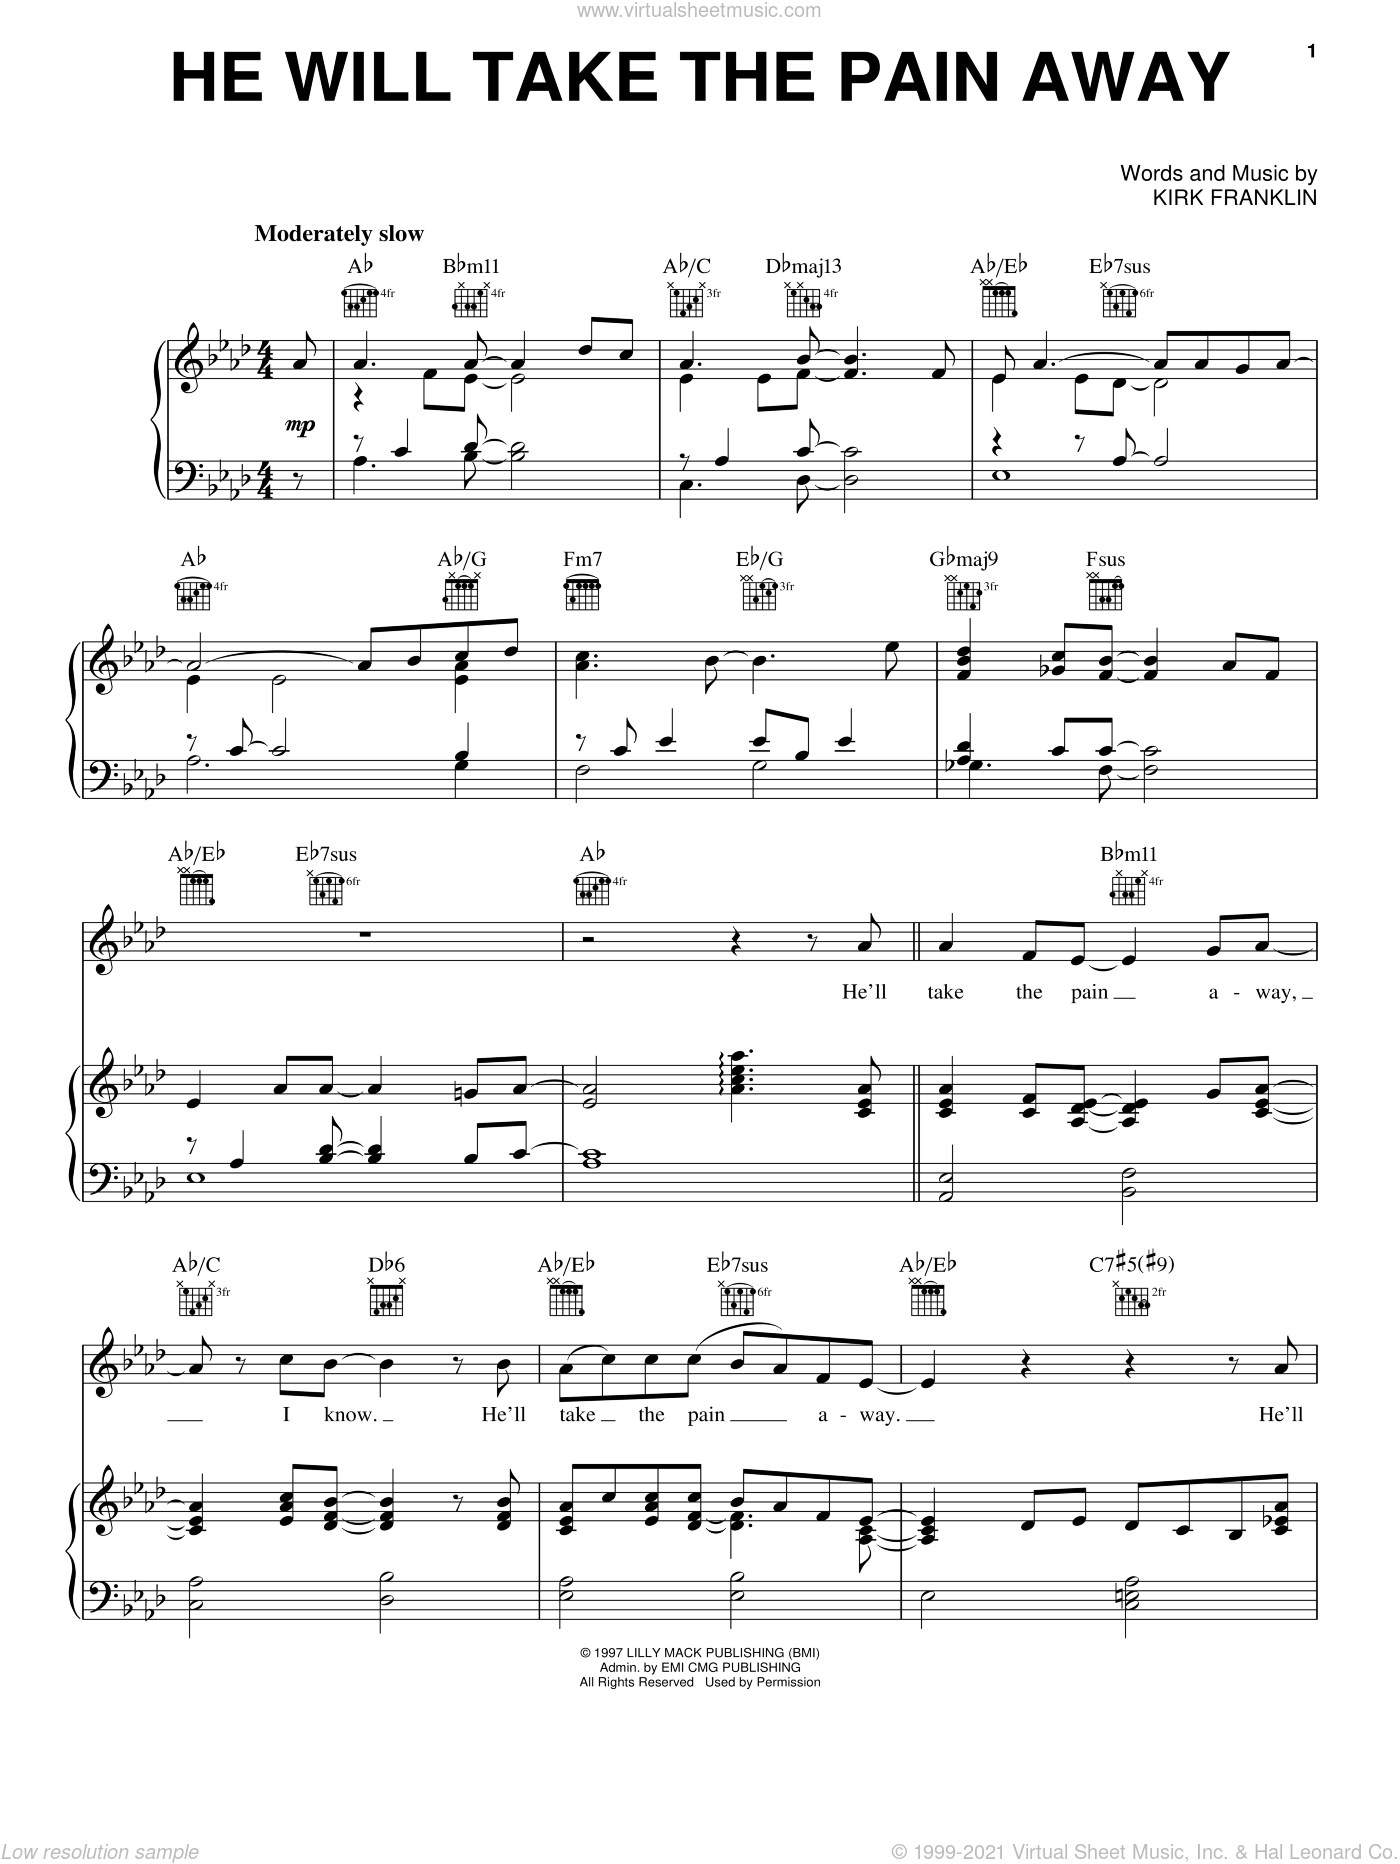 He Will Take The Pain Away sheet music for voice, piano or guitar by Kirk Franklin, intermediate skill level